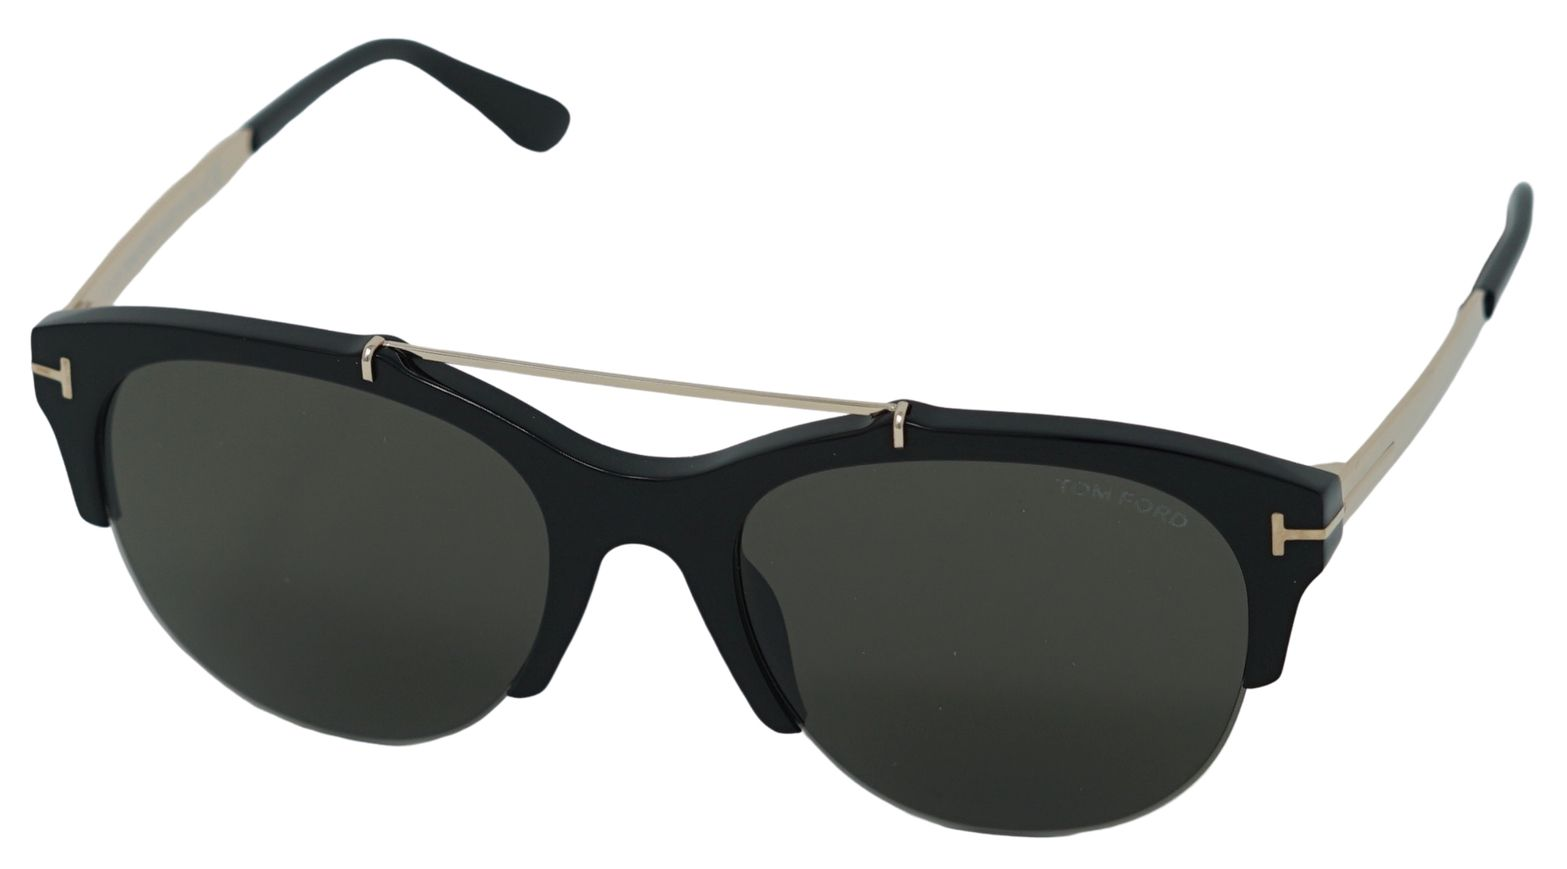 Tom Ford Adrenne Sunglasses FT0517 01A